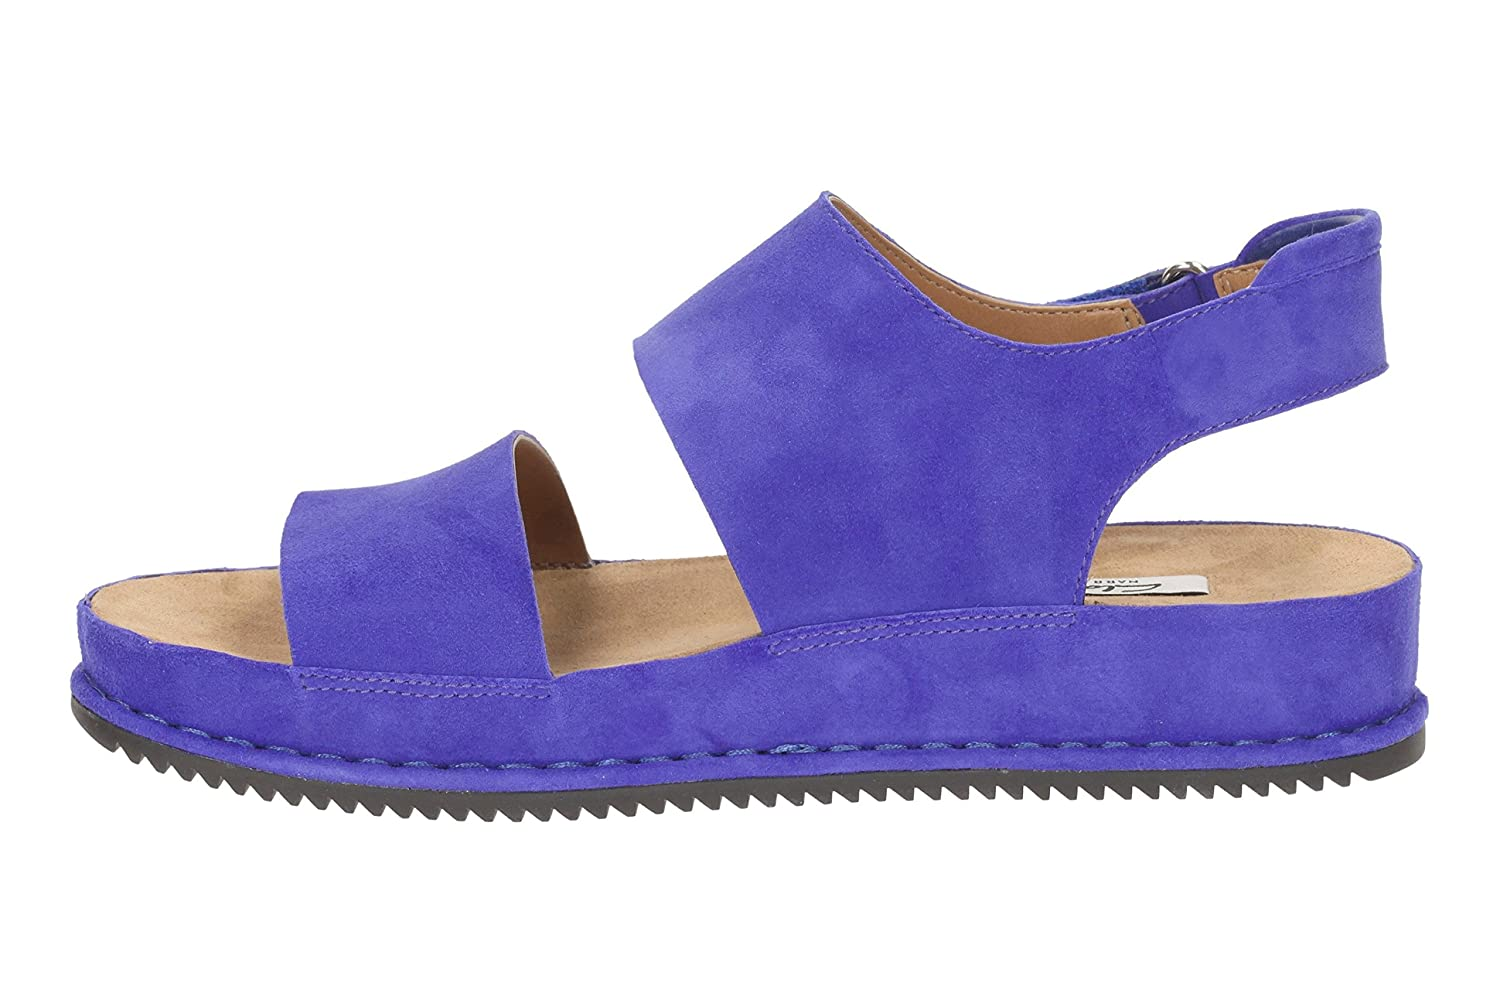 37094f96a Clarks Women s Alderlake Sun Cobalt Fashion Sandals  Buy Online at Low  Prices in India - Amazon.in